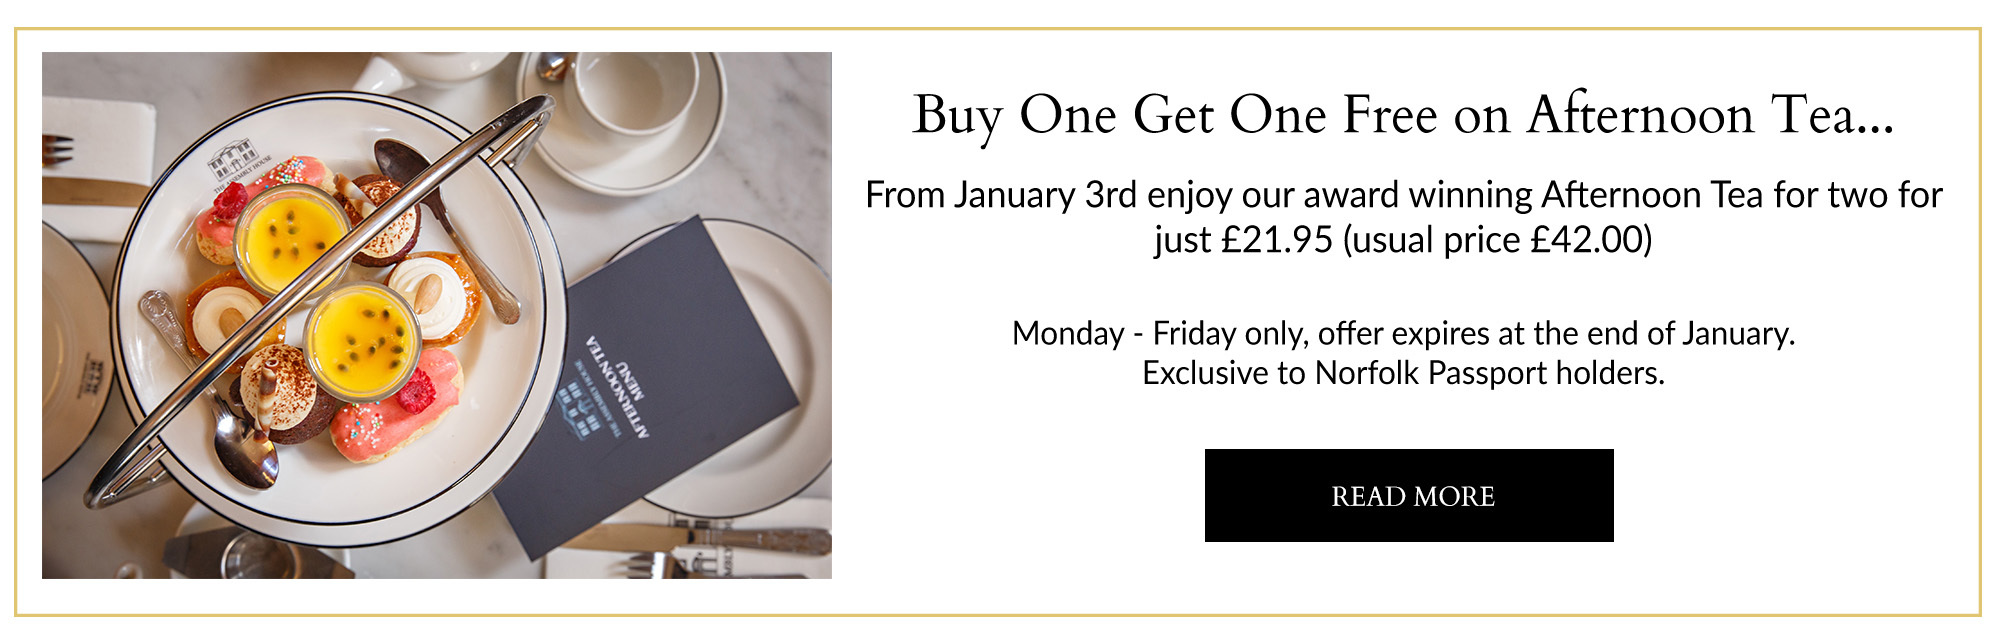 Buy one get one free afternoon tea